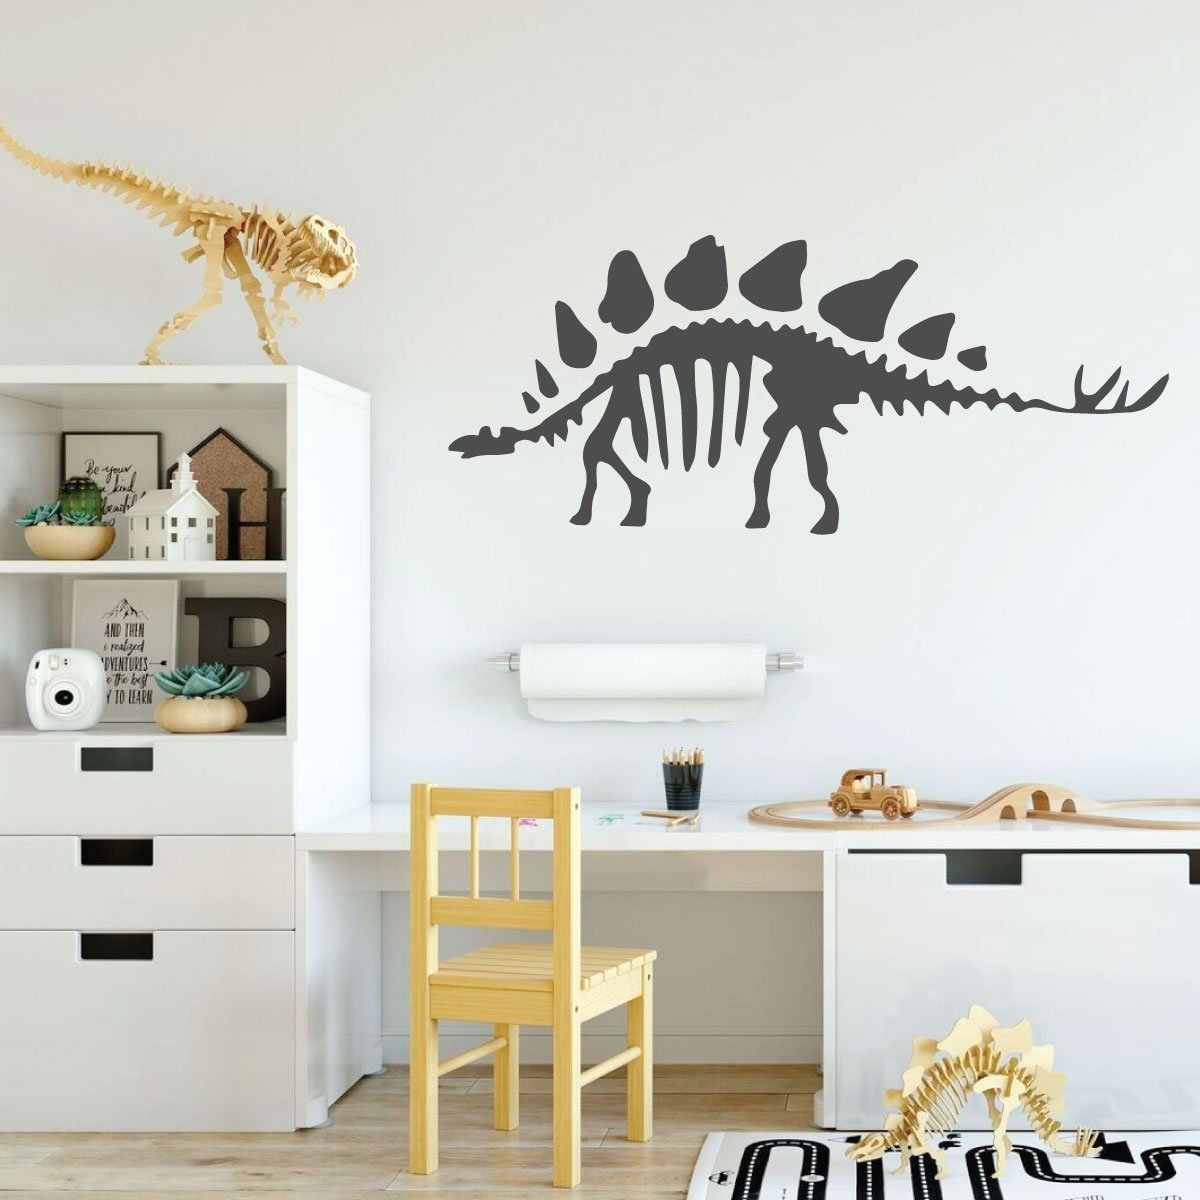 Dinosaur Wall Decals - Stegosaurus Bones - Personalized Vinyl Wall Decoration For Children's Room Playroom, Preschool or Classroom Decor